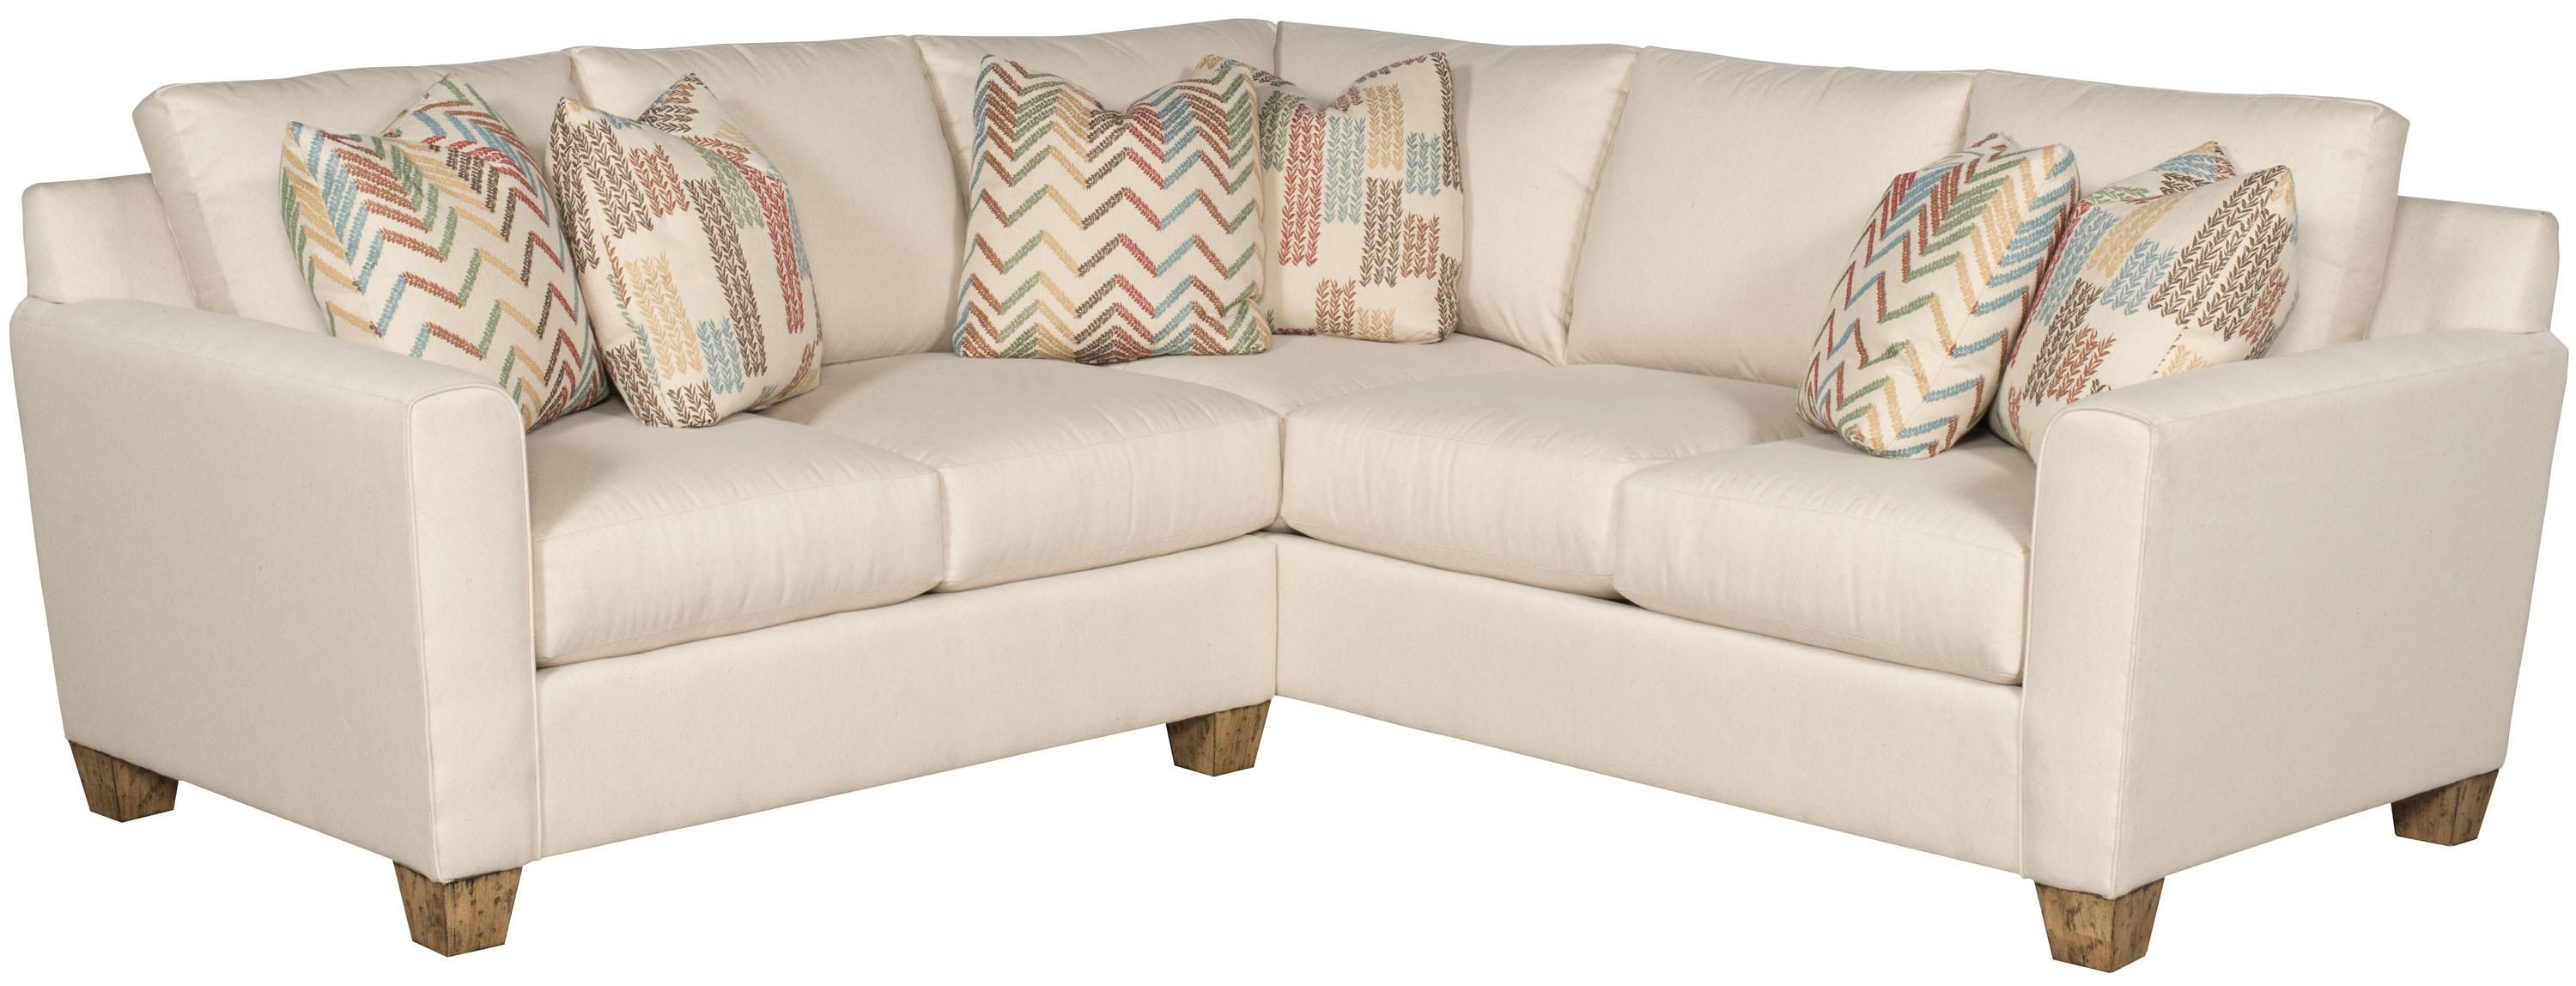 King Hickory Darby Customizable Sectional Sofa